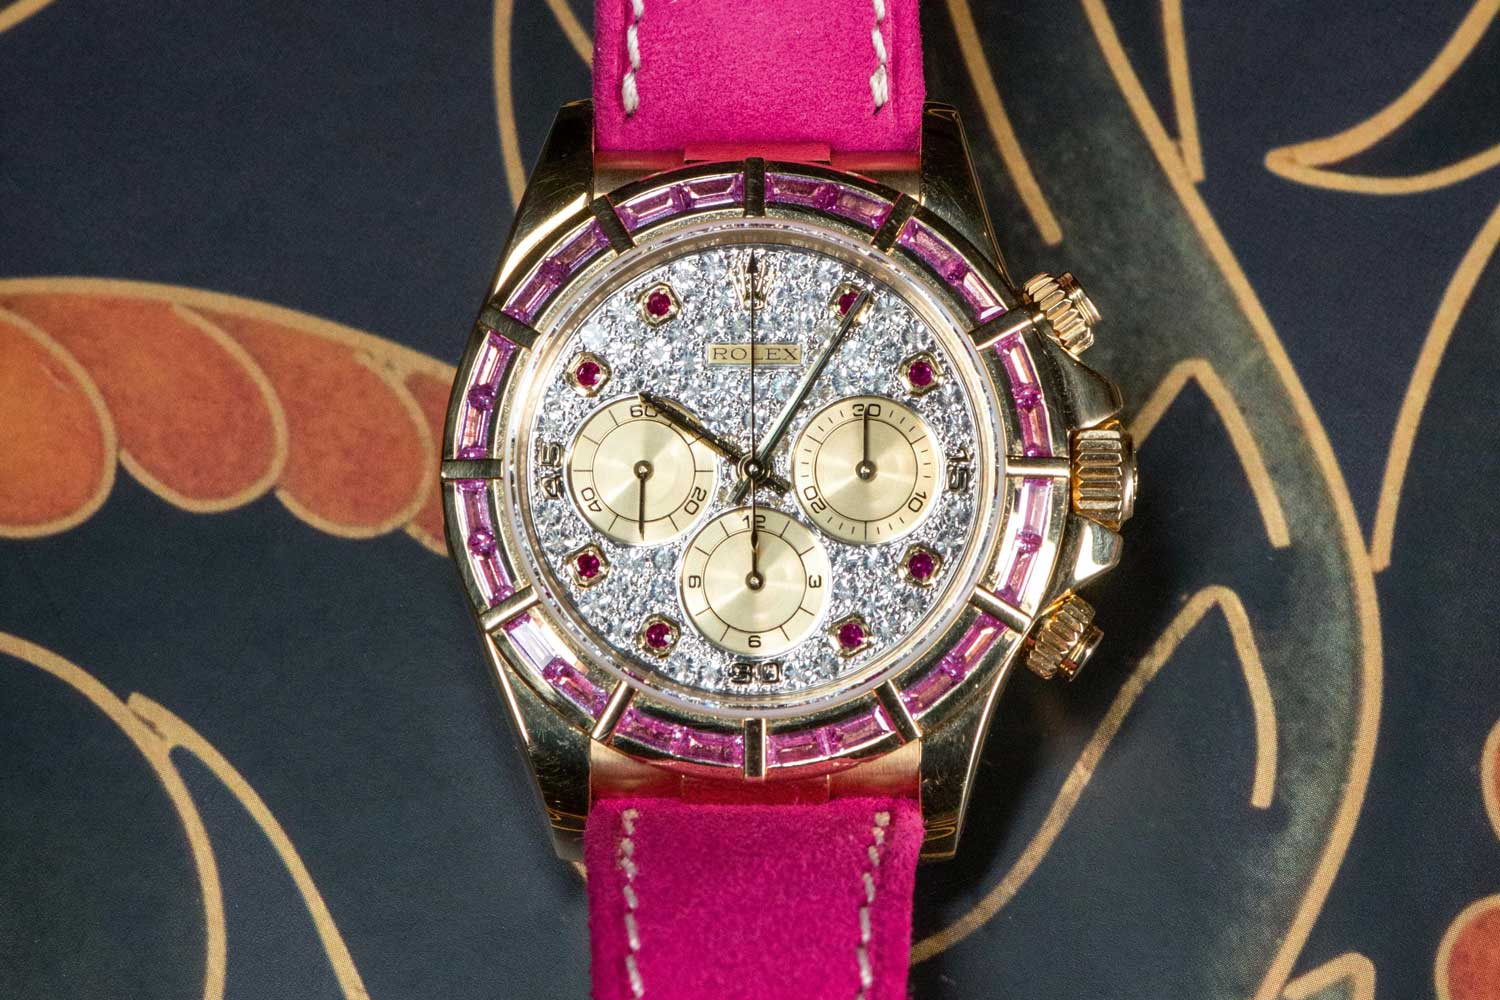 A RUBI edition Daytona with baguette-cut rubies, a fully paved dial and ruby hour markers